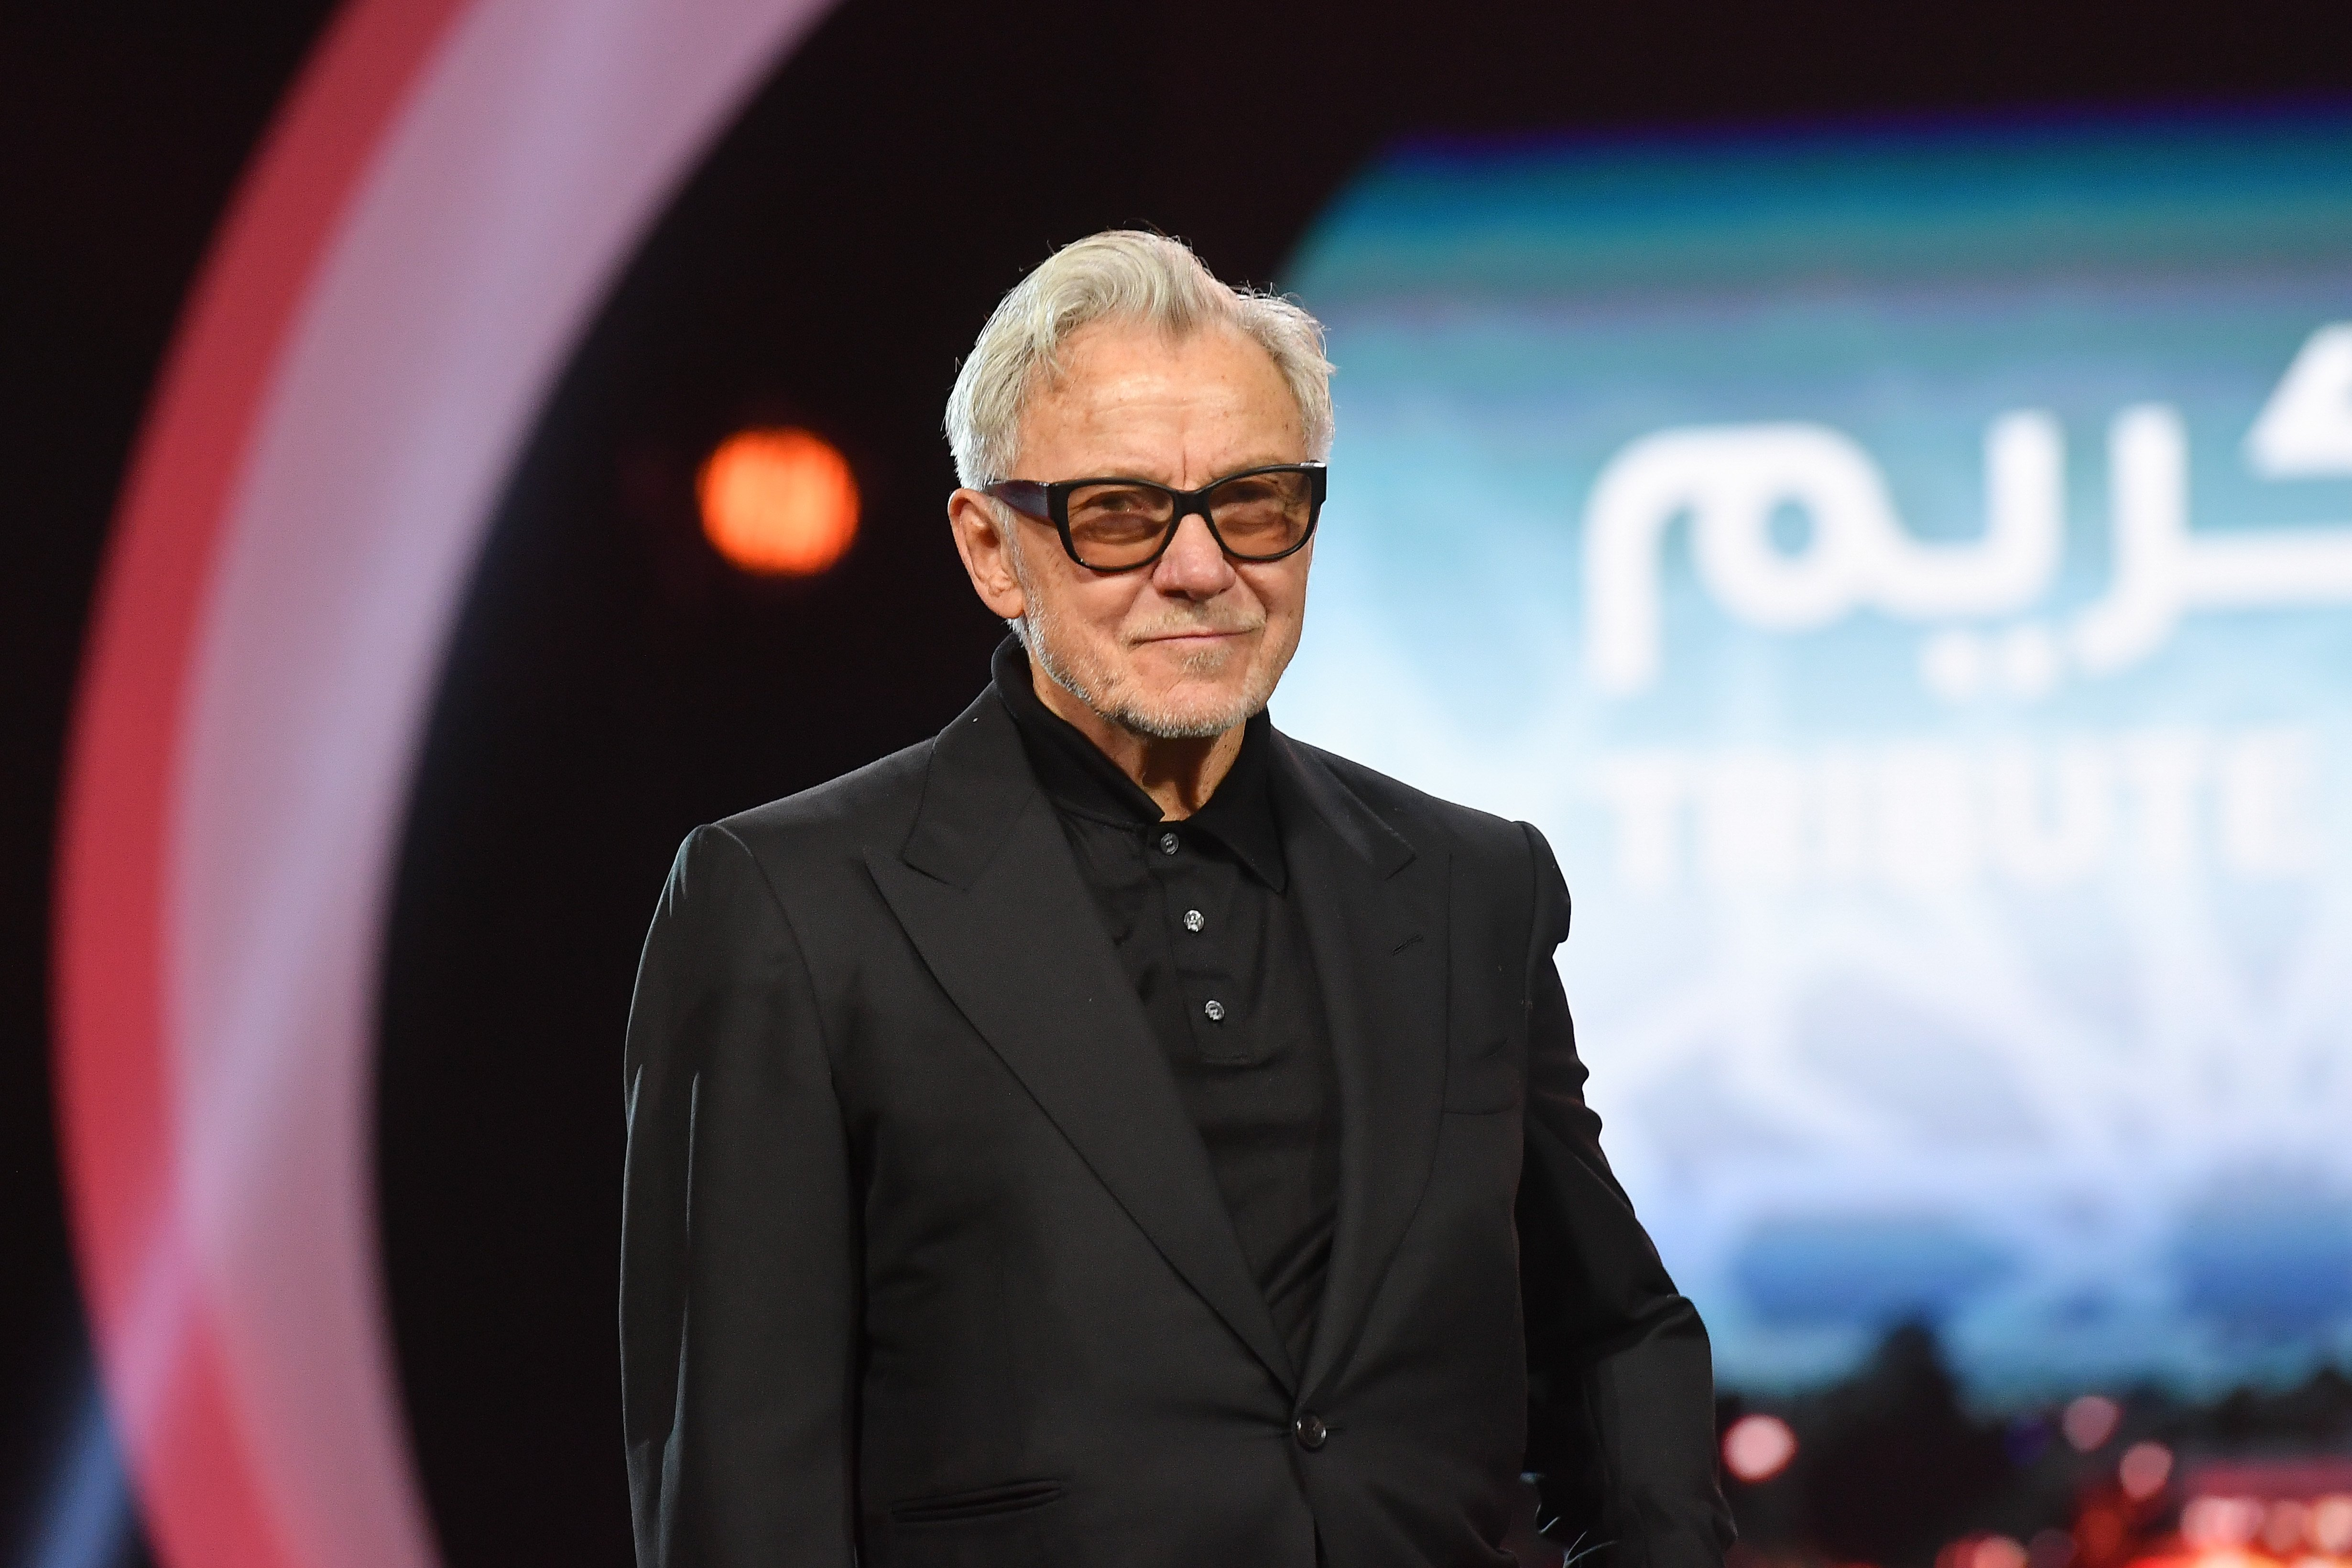 Harvey Keitel at the 18th Marrakech International Film Festival -Day Three- on December 01, 2019 in Marrakech, Morocco | Photo: Getty Images